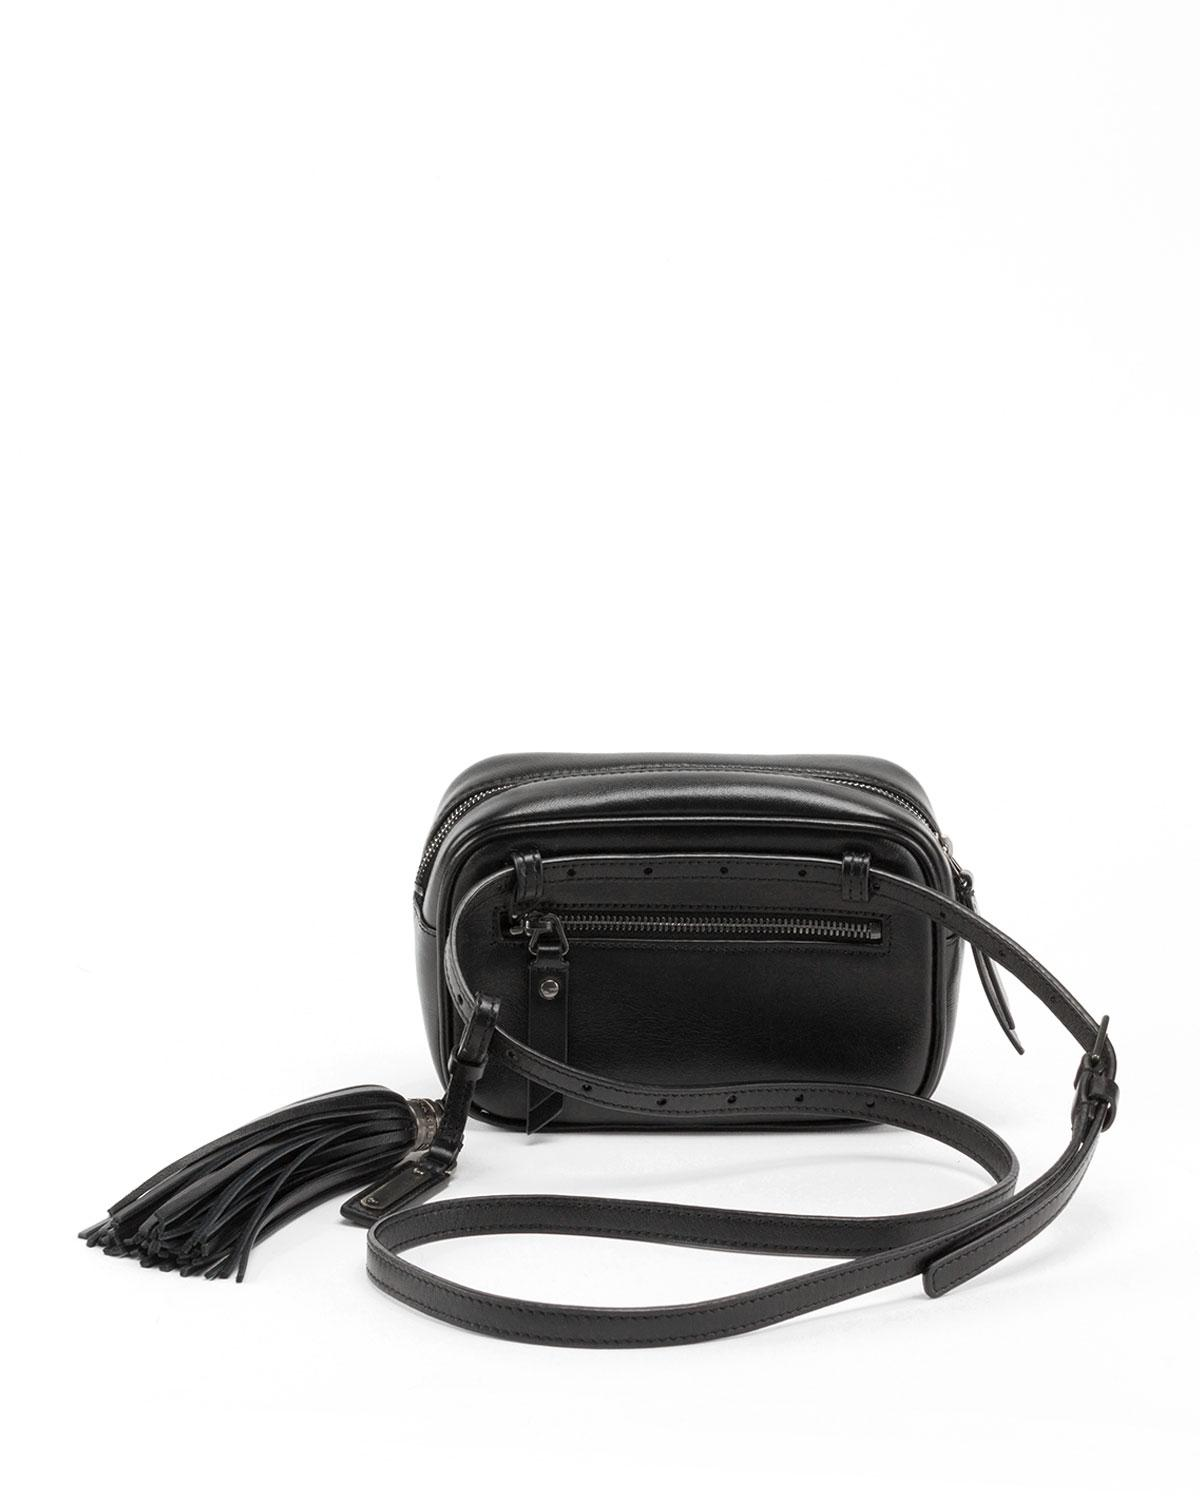 5604d716c8 Lyst - Saint Laurent Lou Monogram Ysl Quilted Leather Belt Bag - Black  Hardware in Black